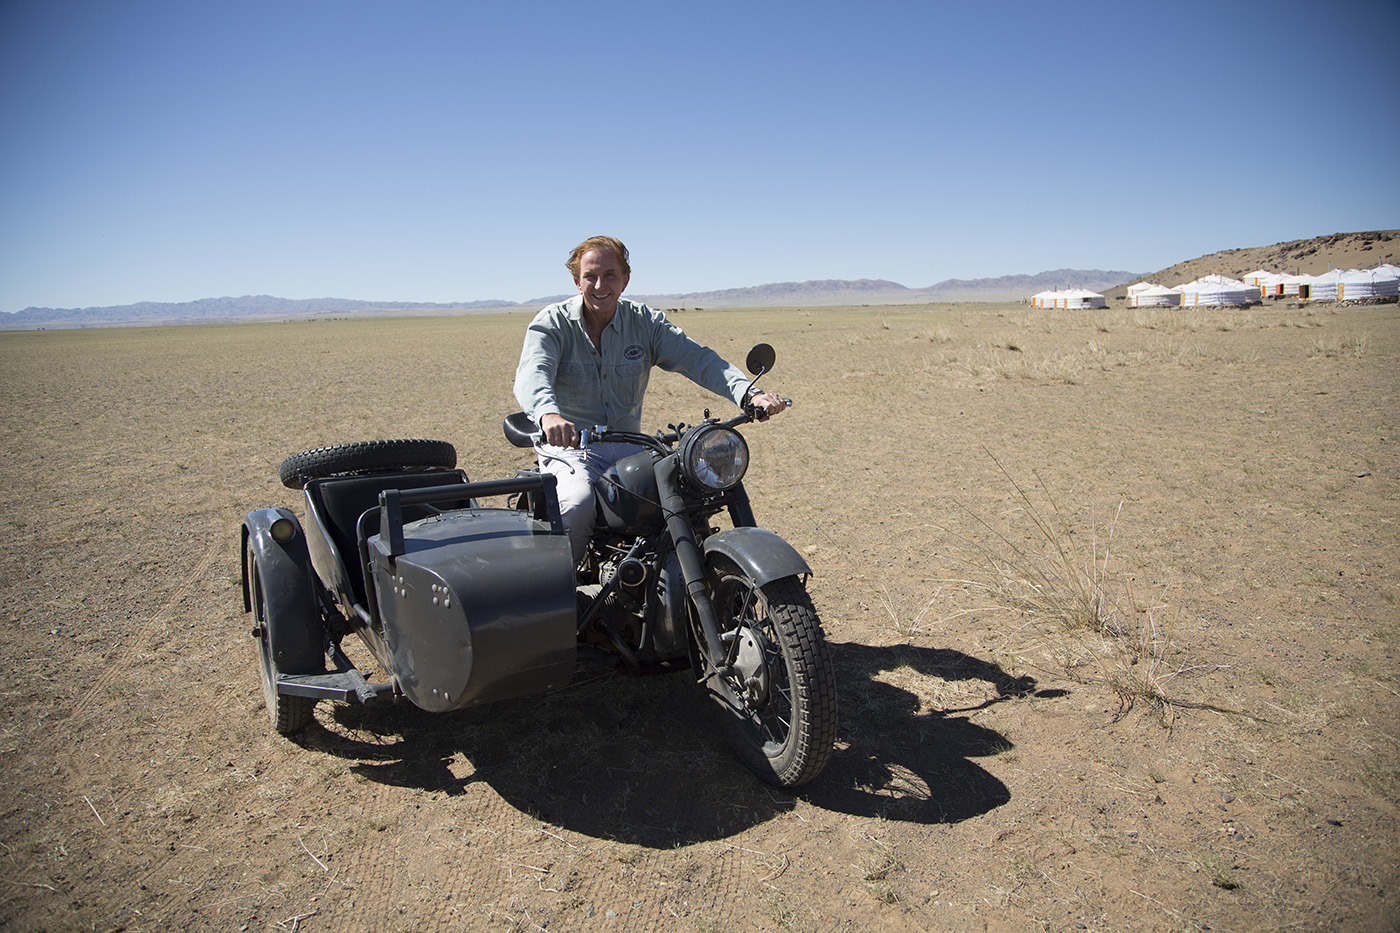 Geoffery Kent poses on bike in the desert